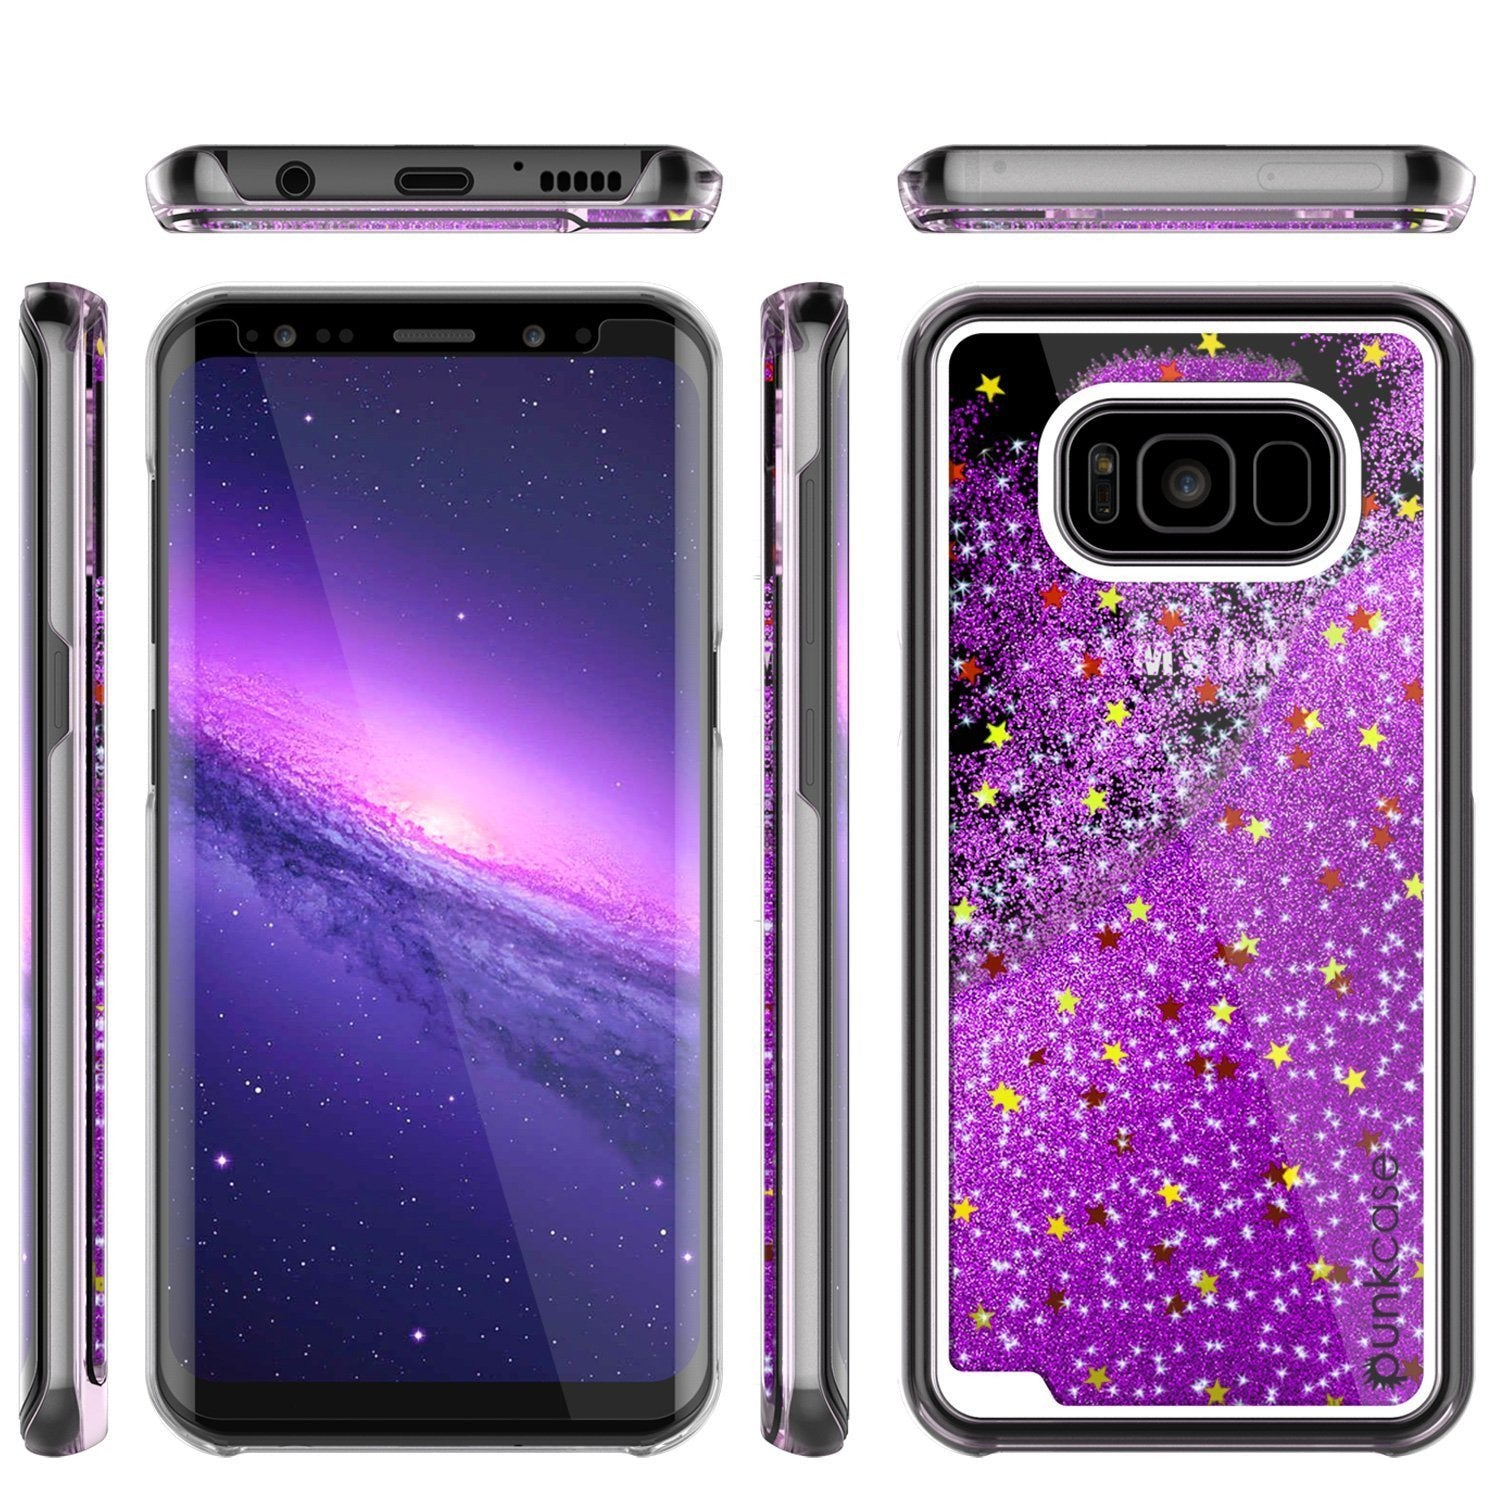 Galaxy S8 Case, Punkcase Liquid Purple Series Protective Dual Layer Floating Glitter Cover